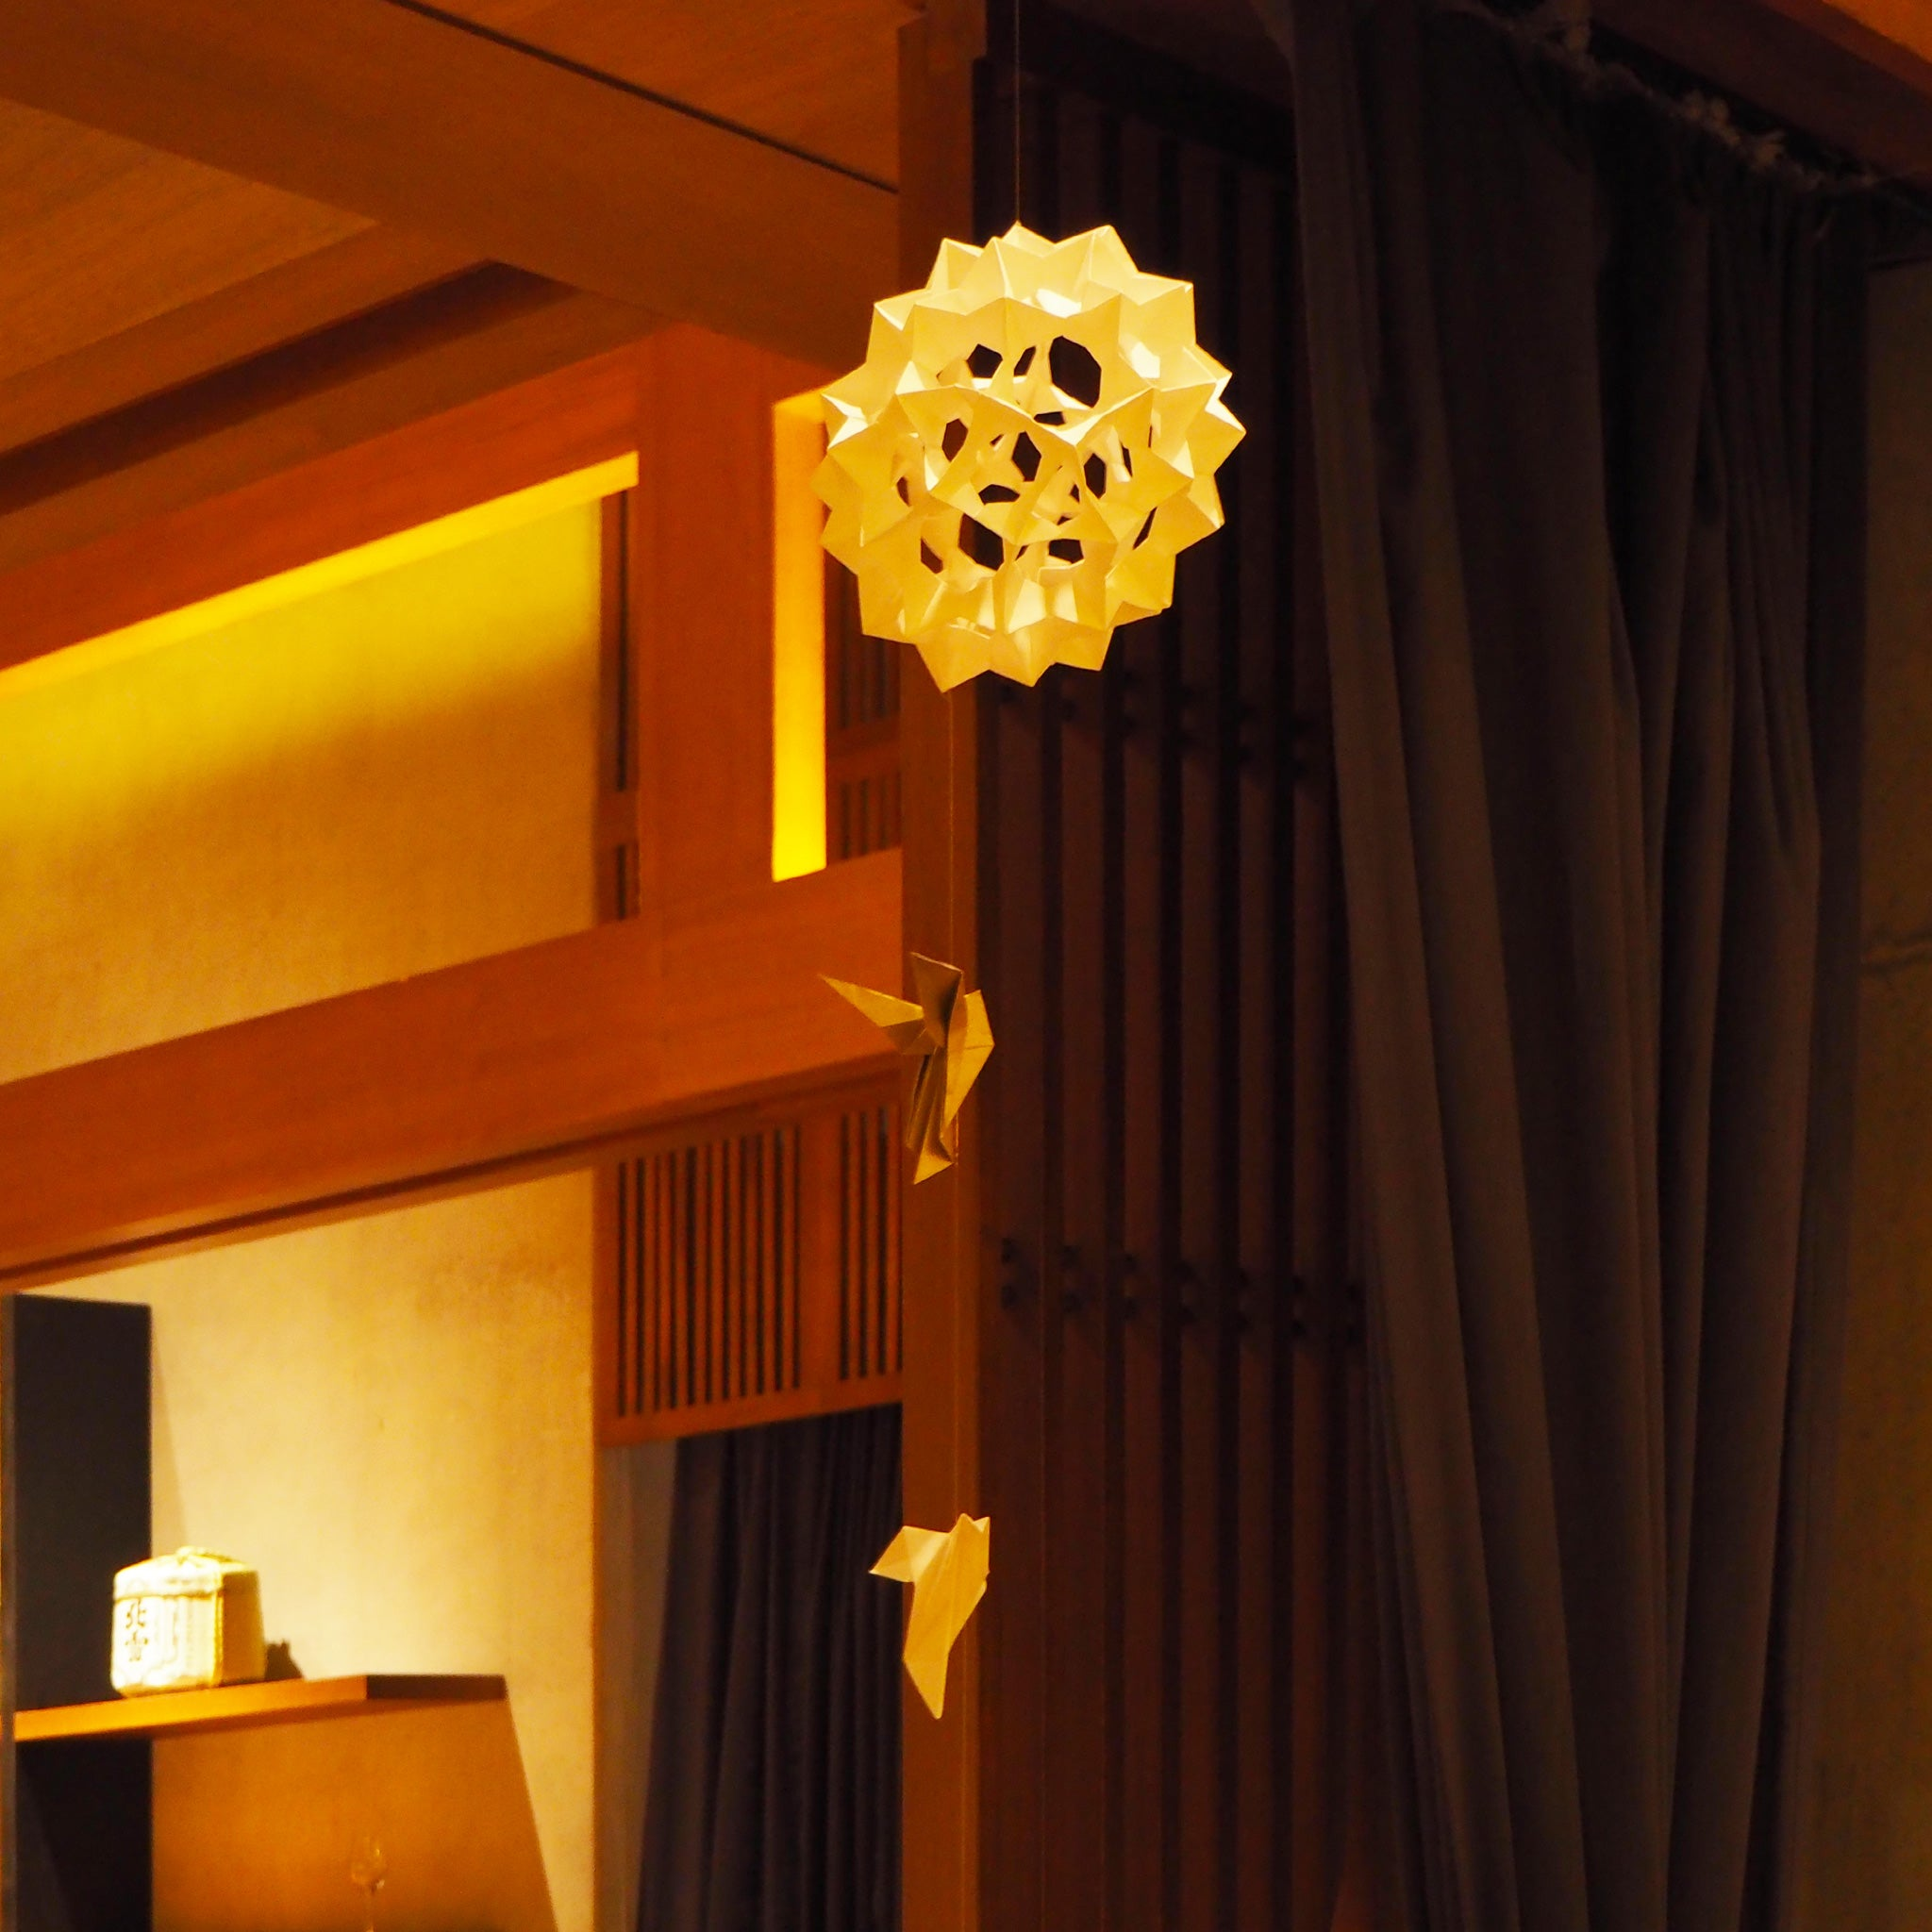 Bespoke hanging origami decoration for business event held at Japanese Hotel in East London.